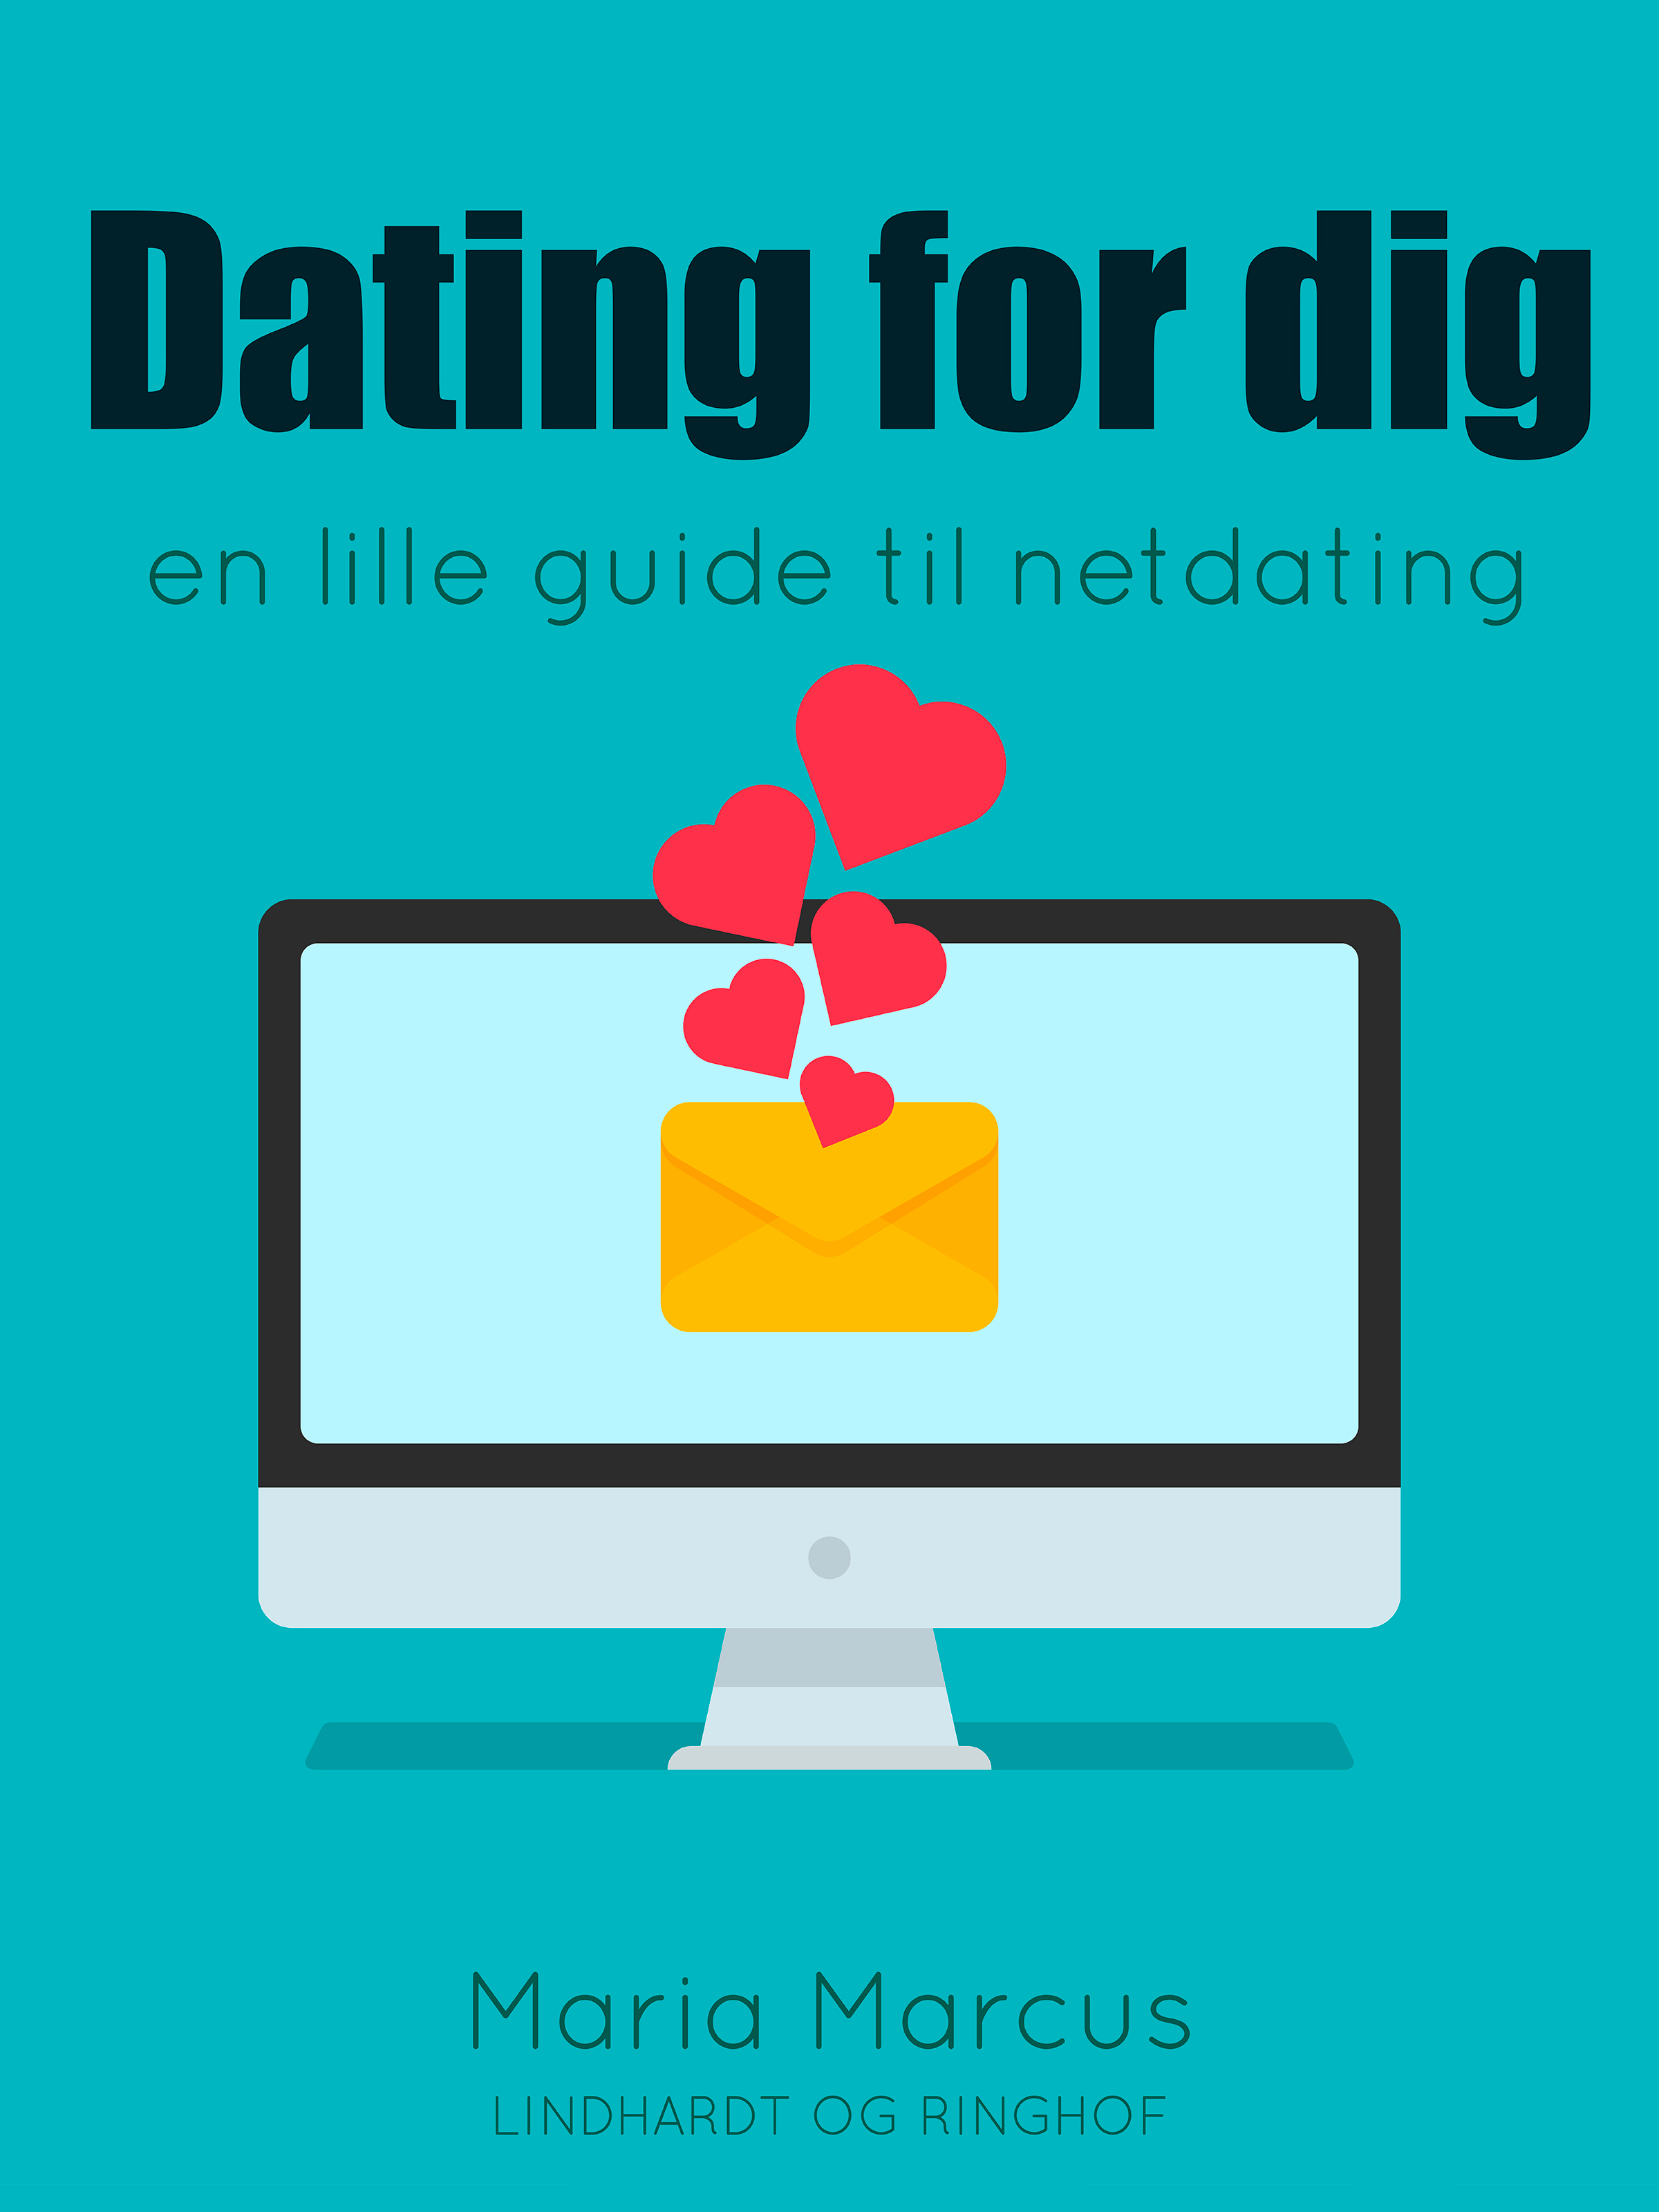 dating pris guide